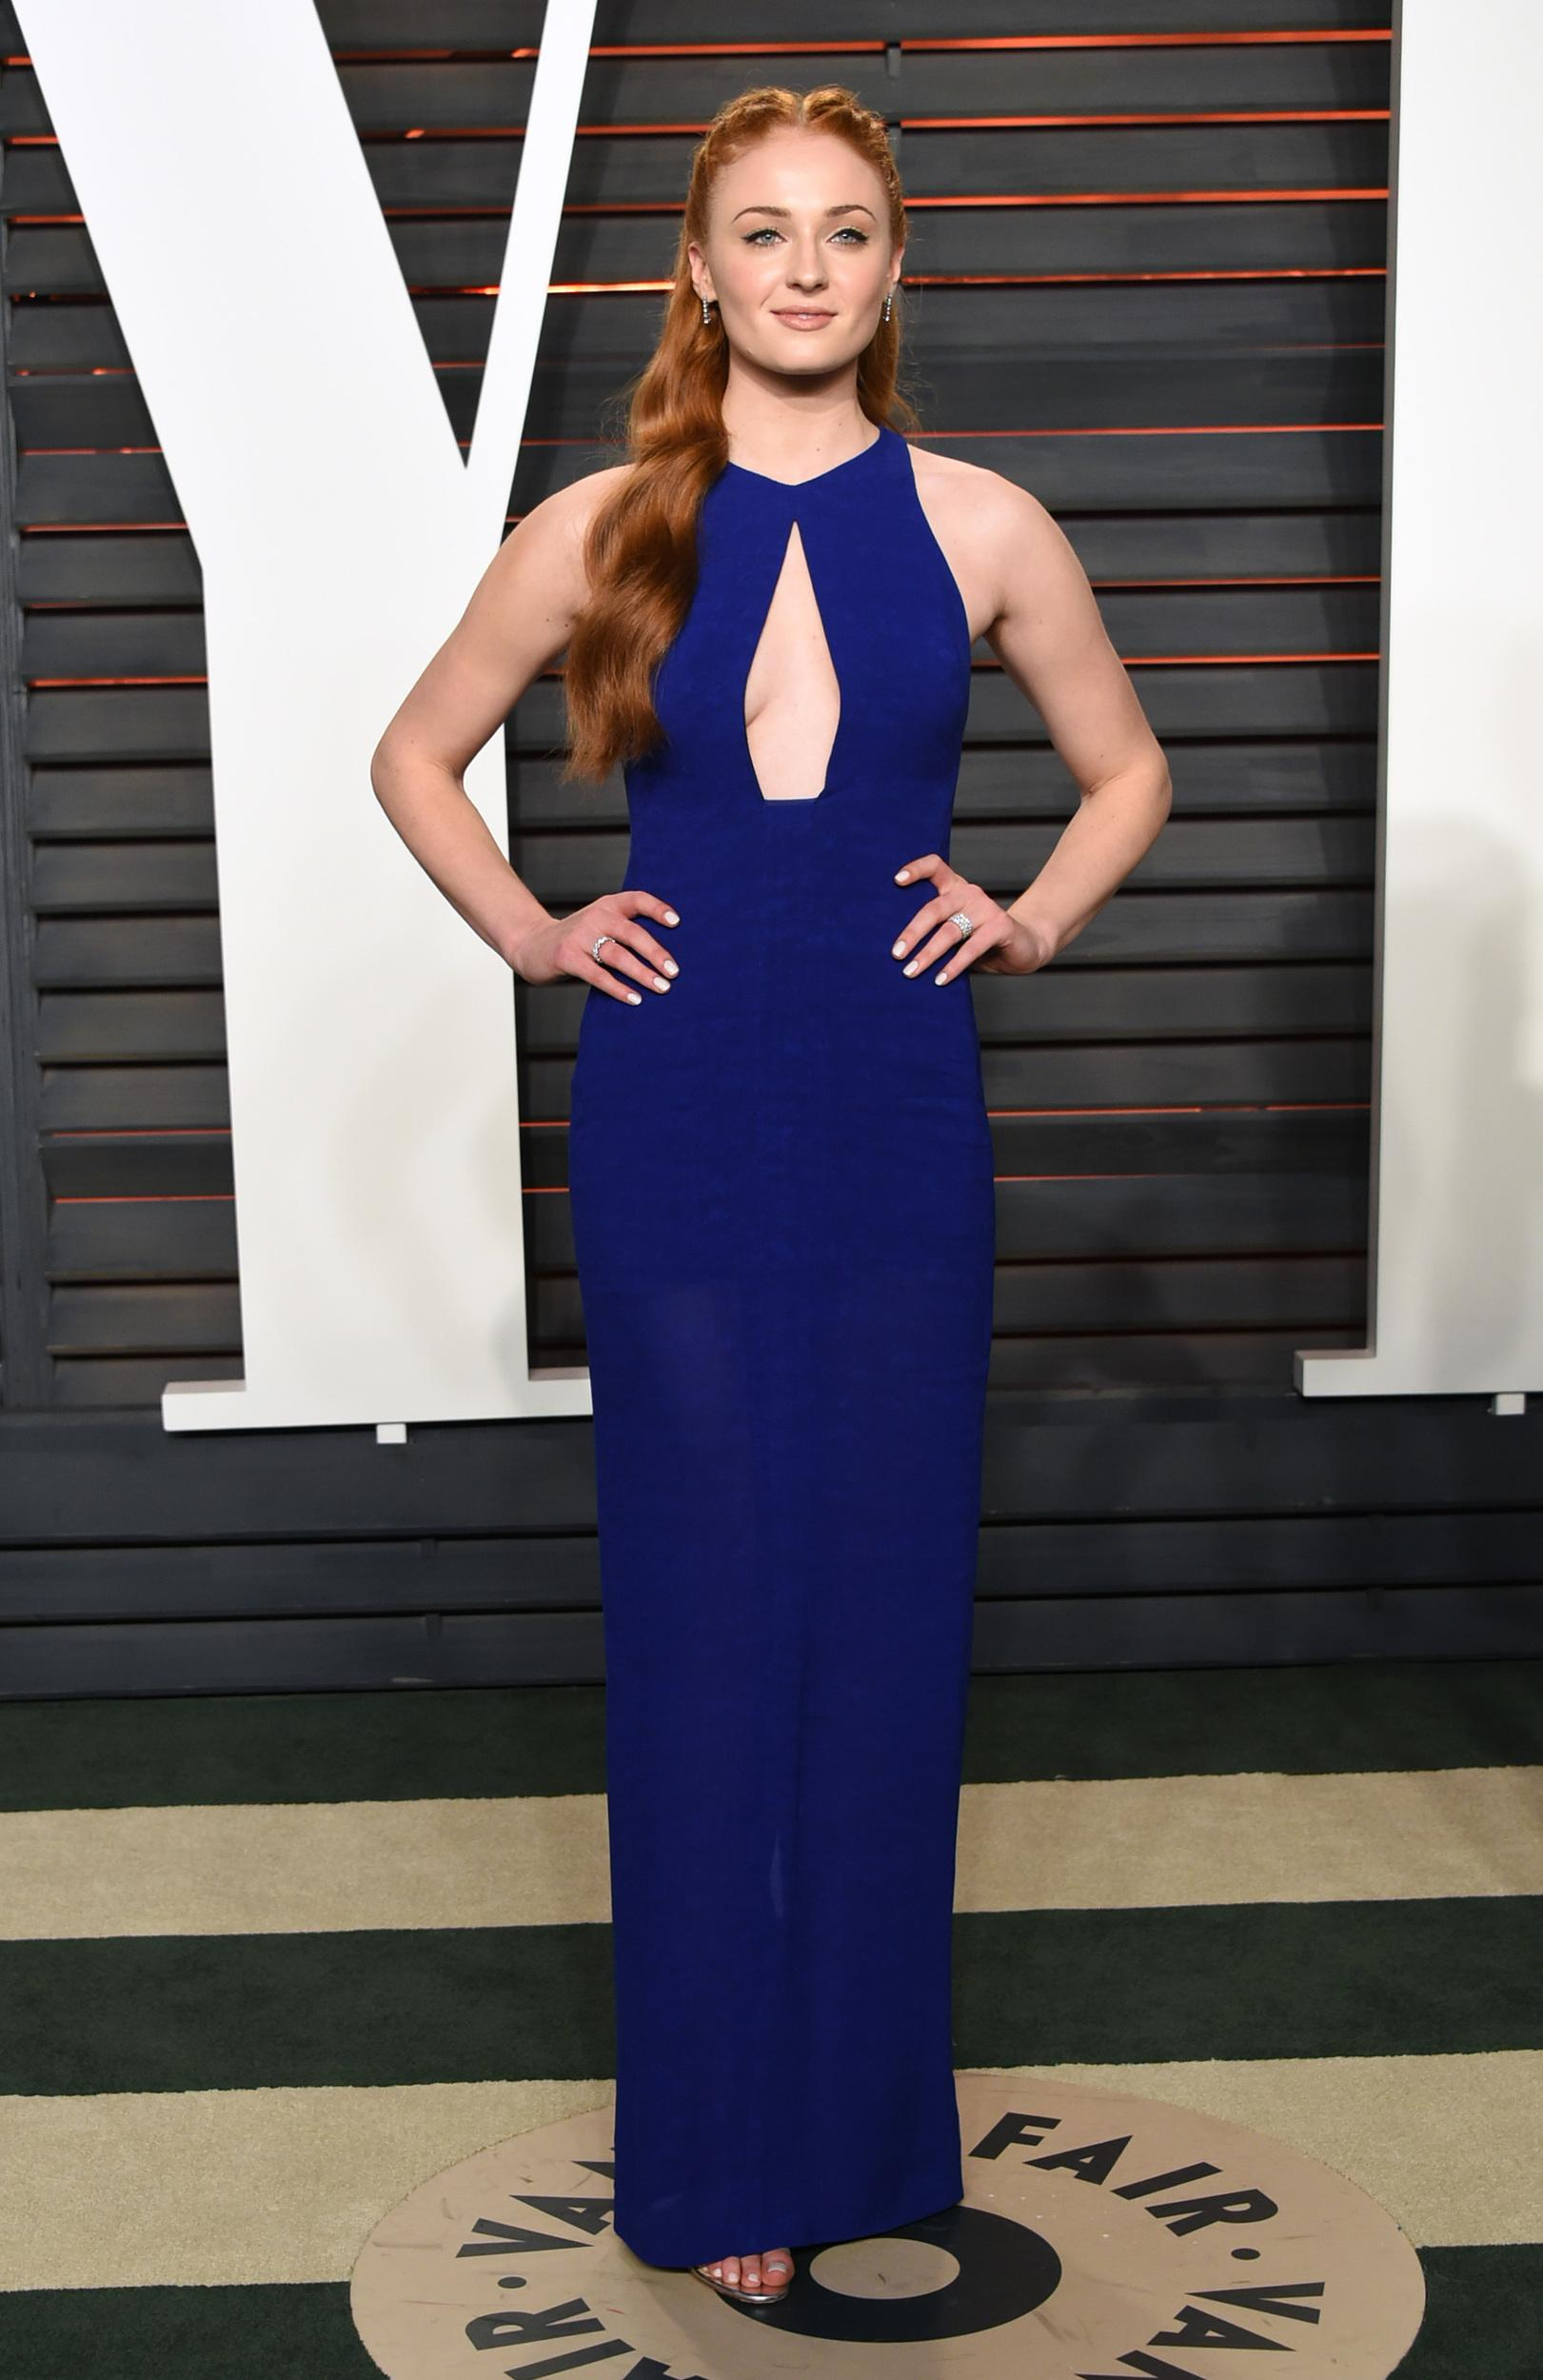 Sophie Turner arrives at the Vanity Fair Oscar Party on Sunday, Feb. 28, 2016, in Beverly Hills, Calif. (Photo by Evan Agostini/Invision/AP)